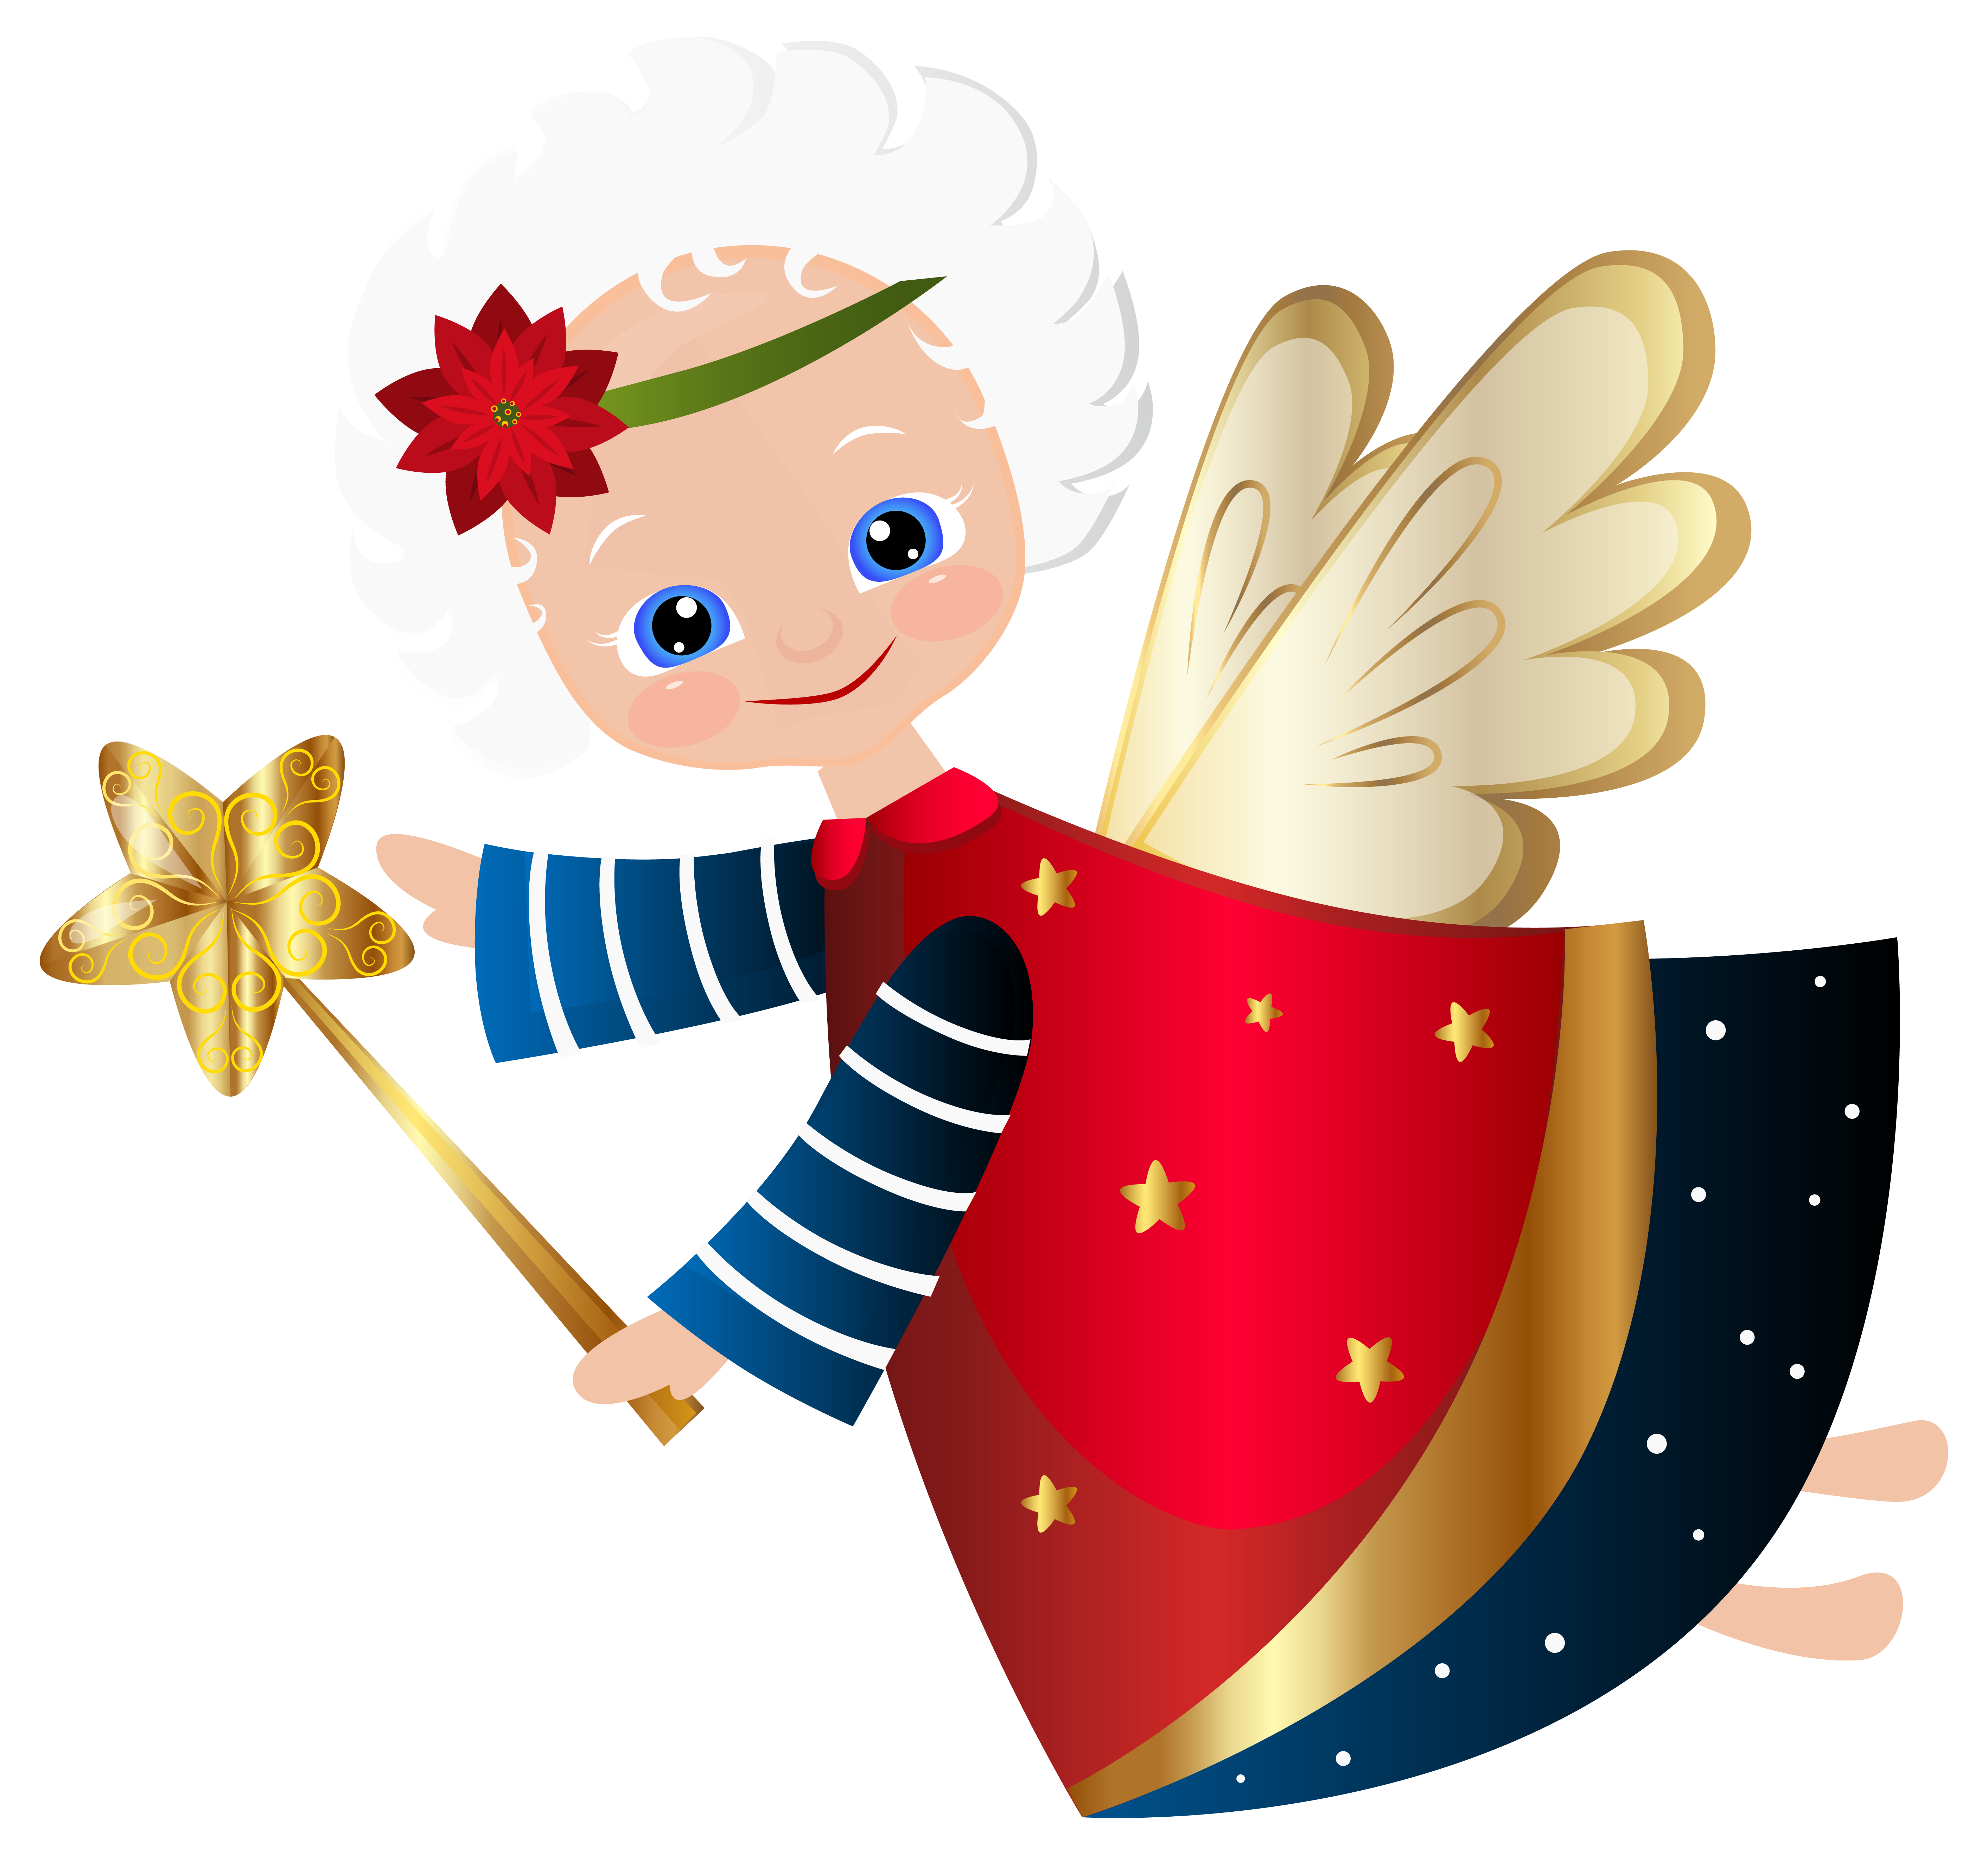 Clipart christmas angels graphic transparent library Cute Christmas Angel Transparent PNG Clip Art Image | Клипарты ... graphic transparent library